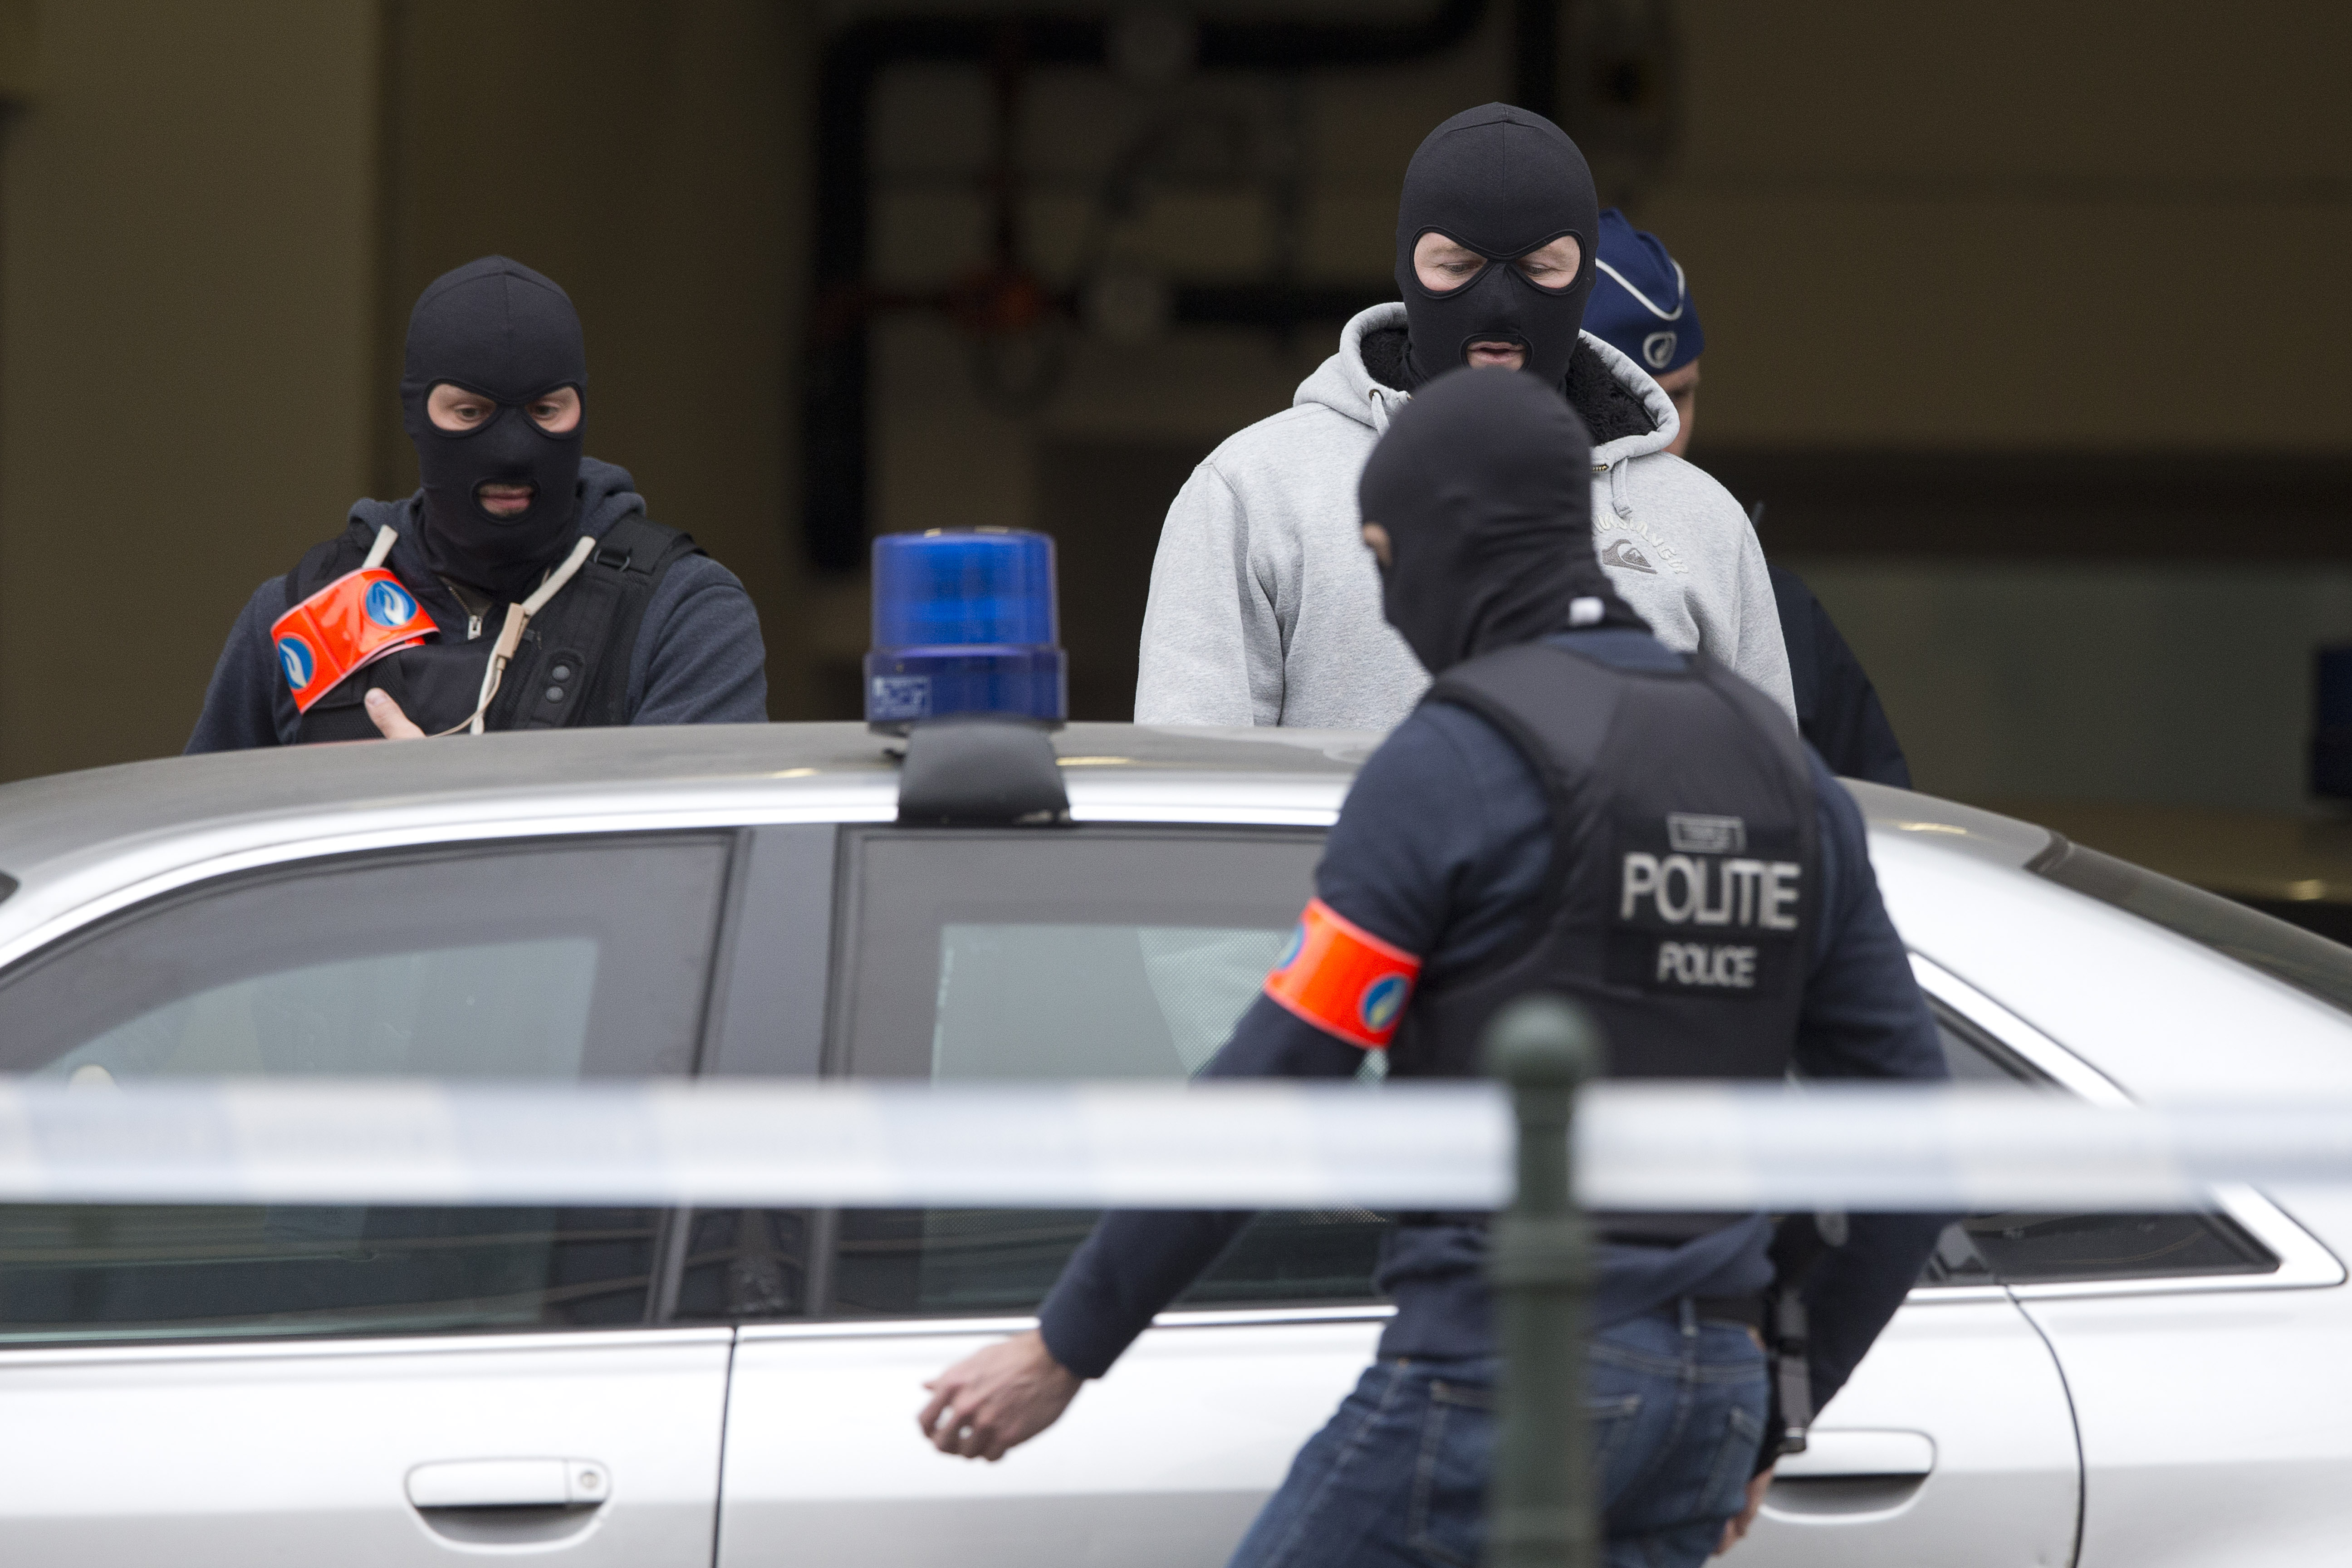 Belgian police officers get into a vehicle outside a court building where Salah Abdeslam, the top suspect in last year's deadly Paris attacks, was expected to appear before a judge in Brussels, Belgium, March 24, 2016.